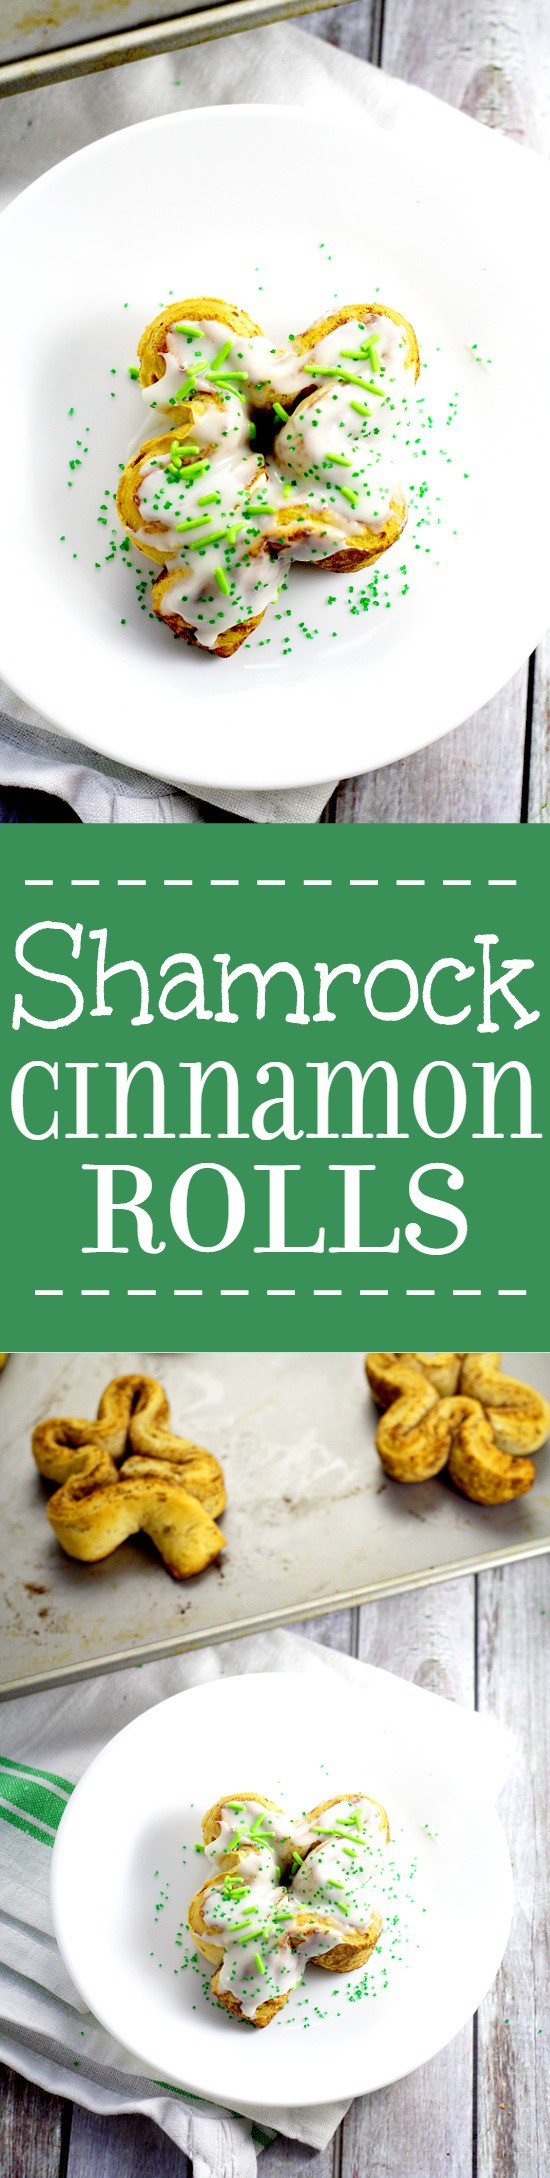 Shamrock Cinnamon Rolls with pretty green sprinkles. Adorable, but totally easy Shamrock Cinnamon Rolls make a festive St Patrick's Day breakfast idea that the kids will love! So cute!